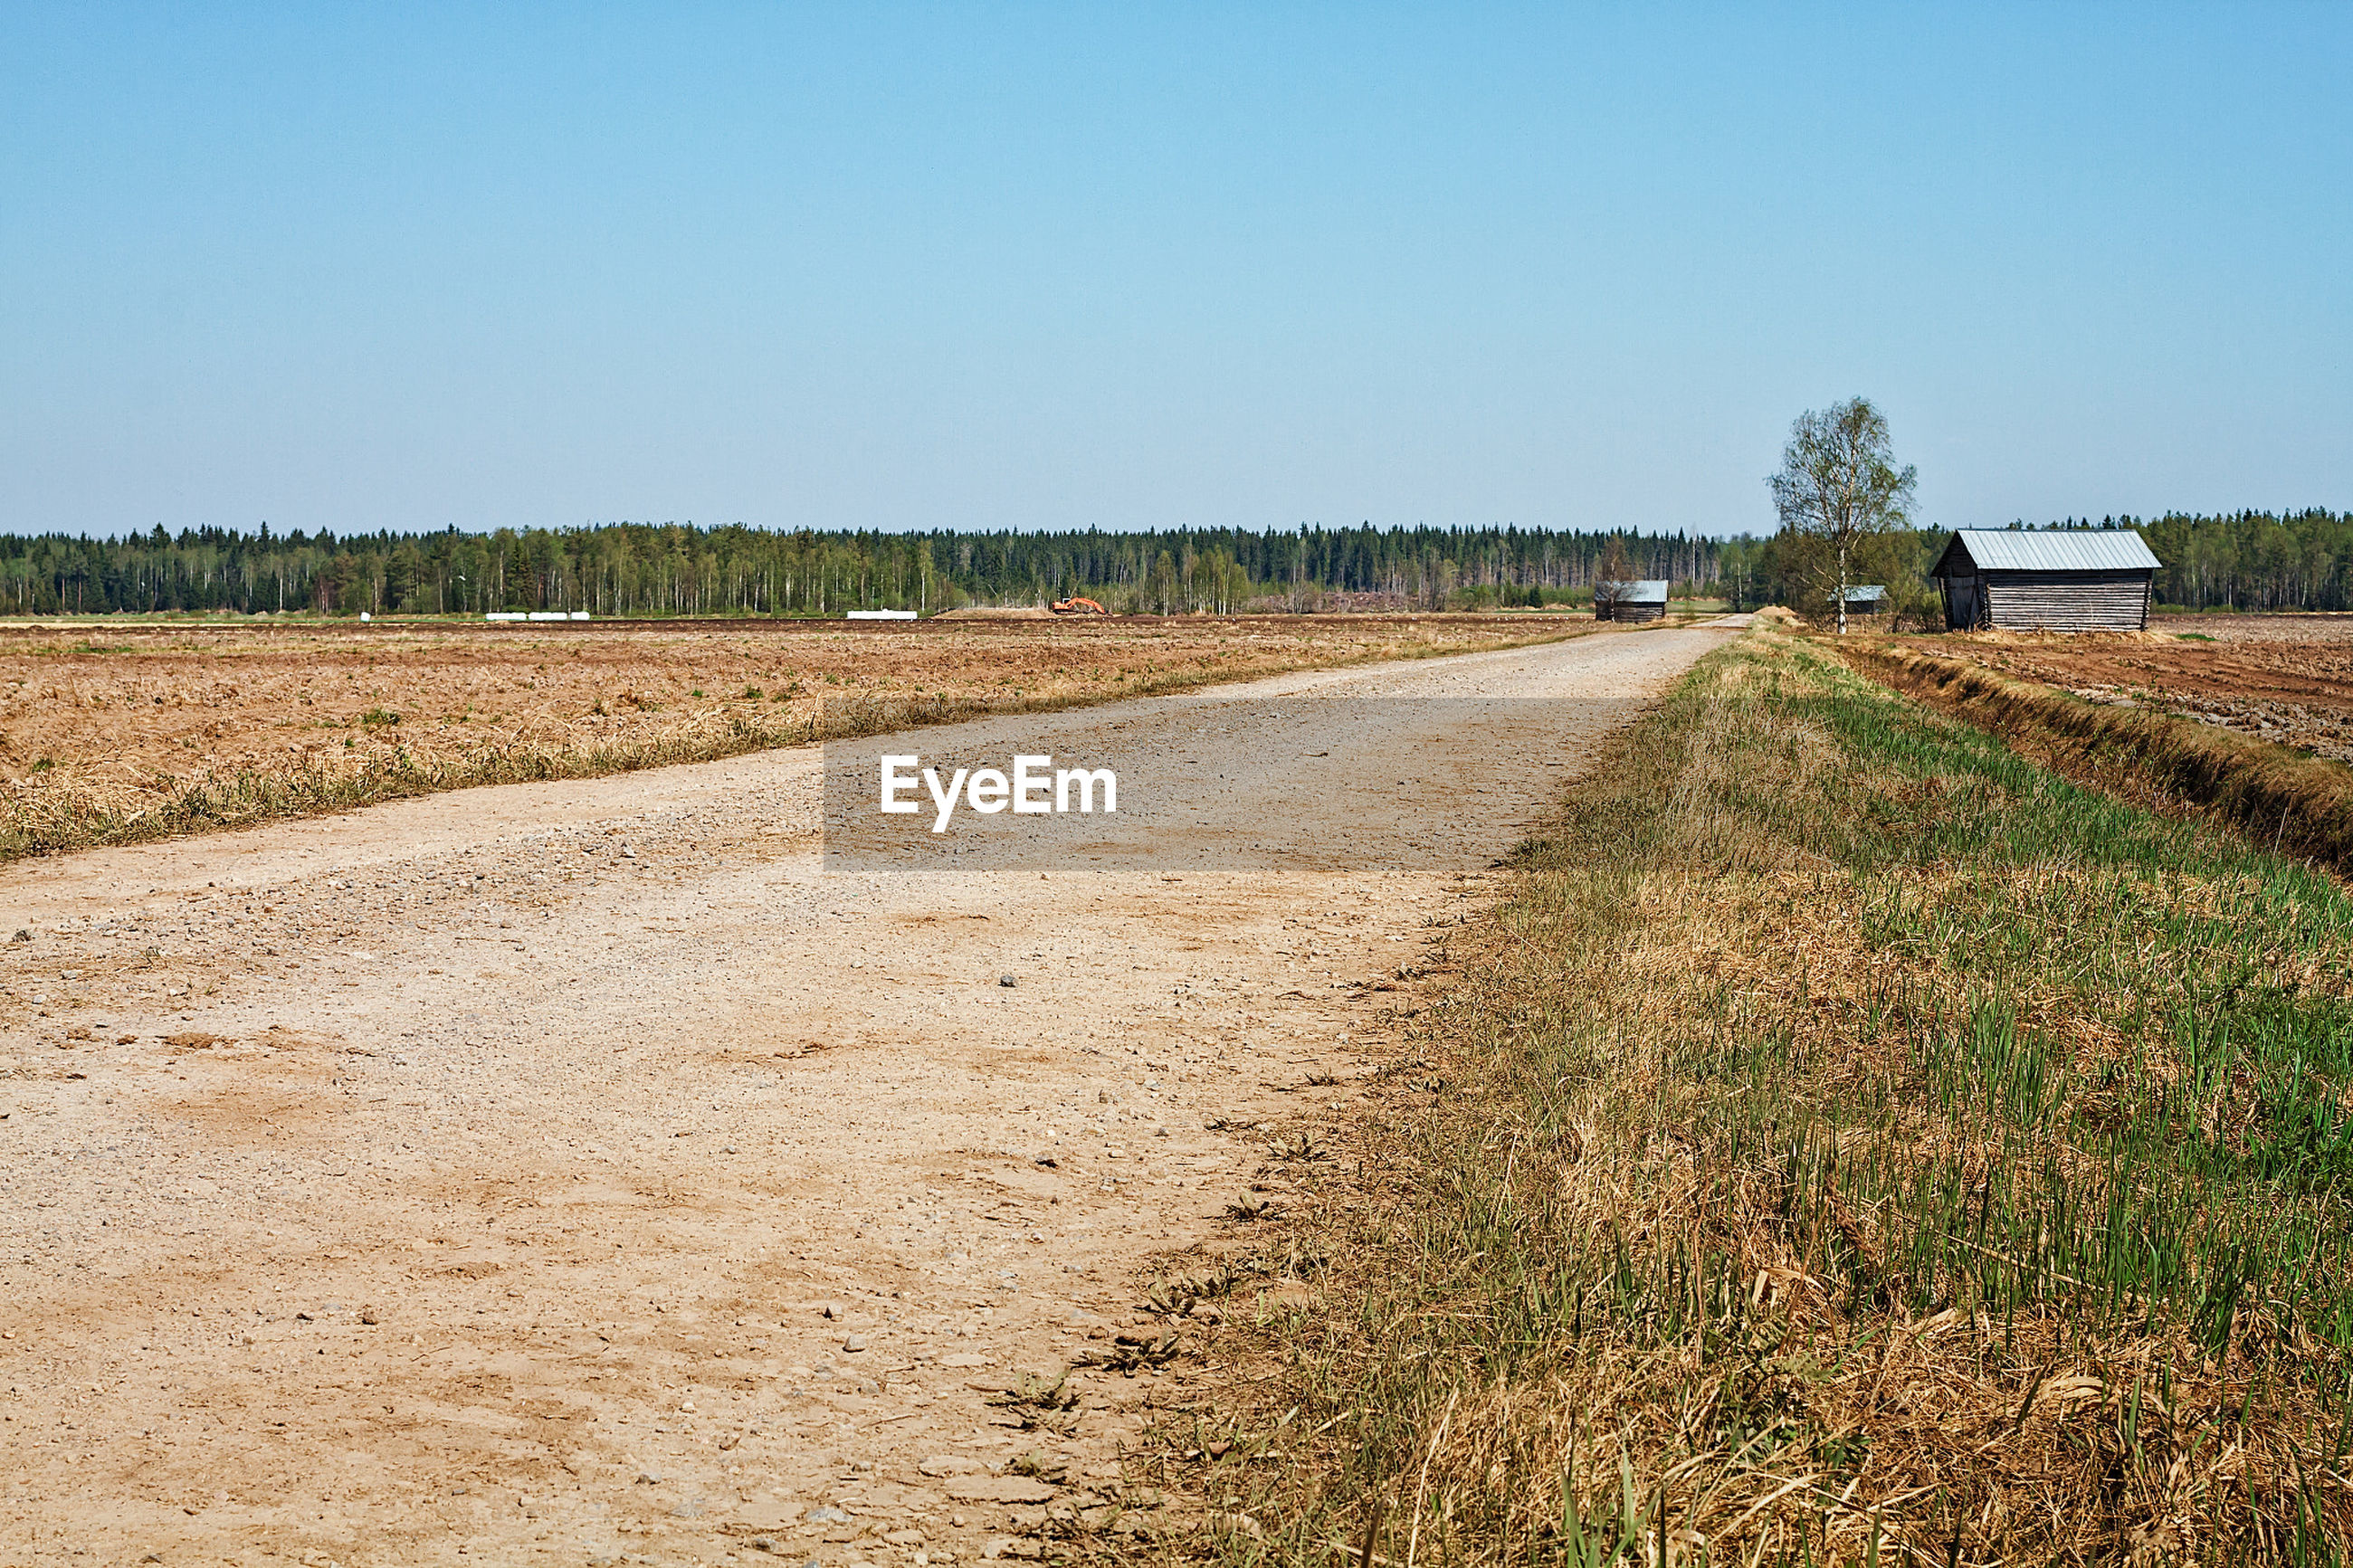 ROAD PASSING THROUGH AGRICULTURAL FIELD